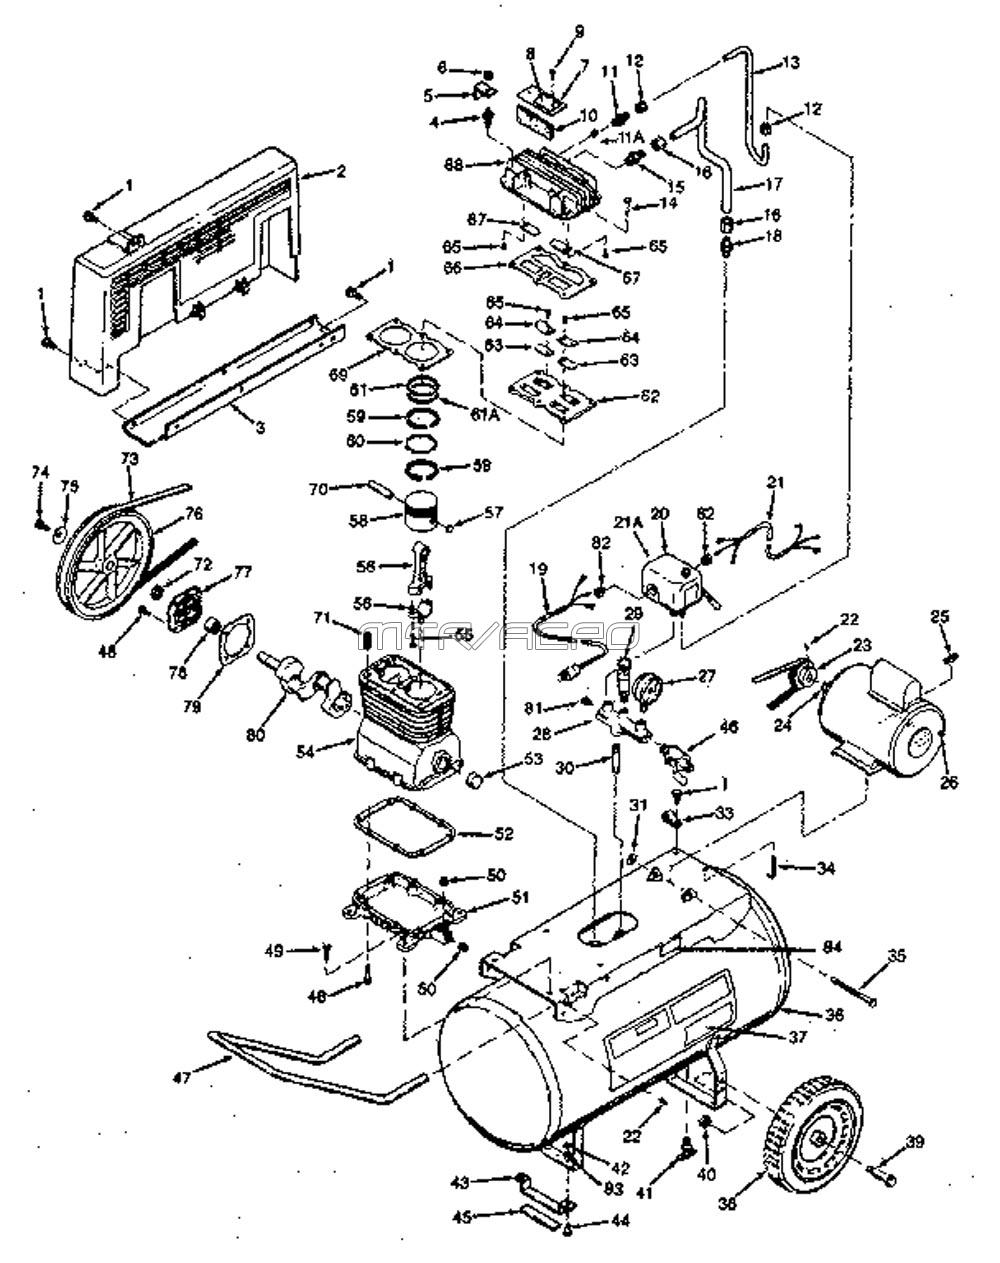 Craftsman Drawing At Free For Personal Use Wiring Diagram Router 1000x1263 Sears 919177541 Air Compressor Parts